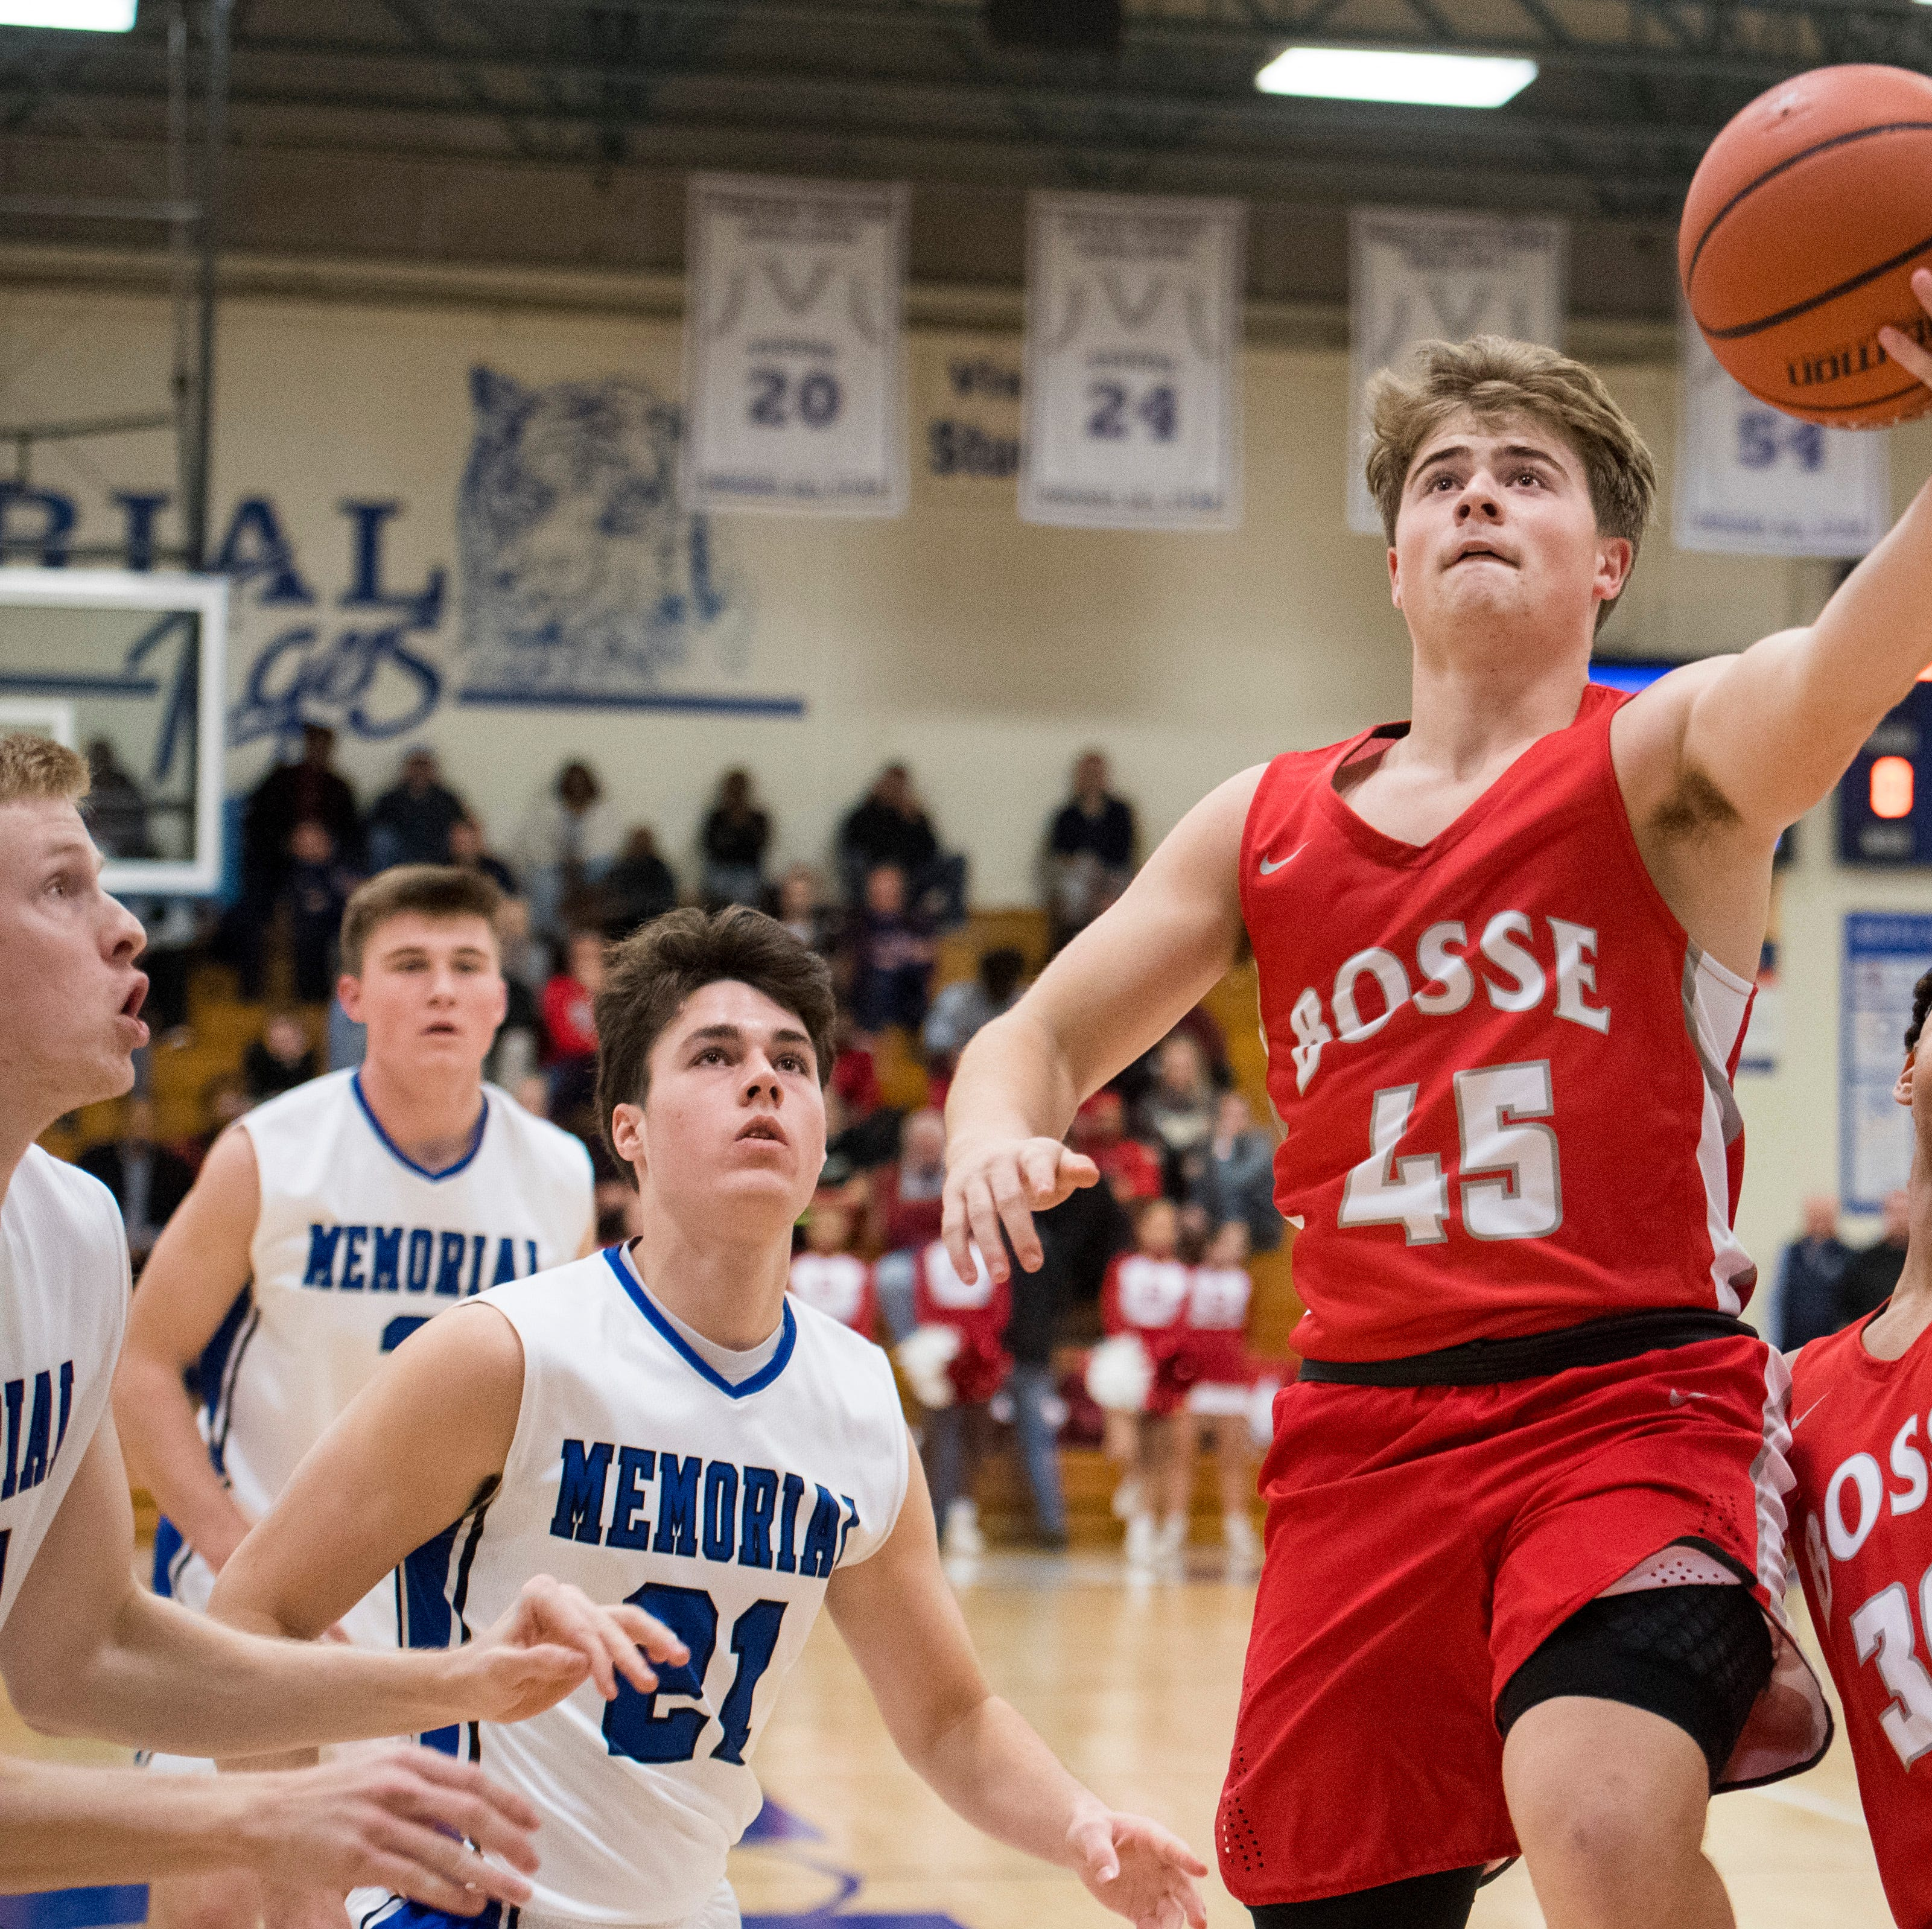 Bosse point guard Kolten Sanford out indefinitely with a broken foot